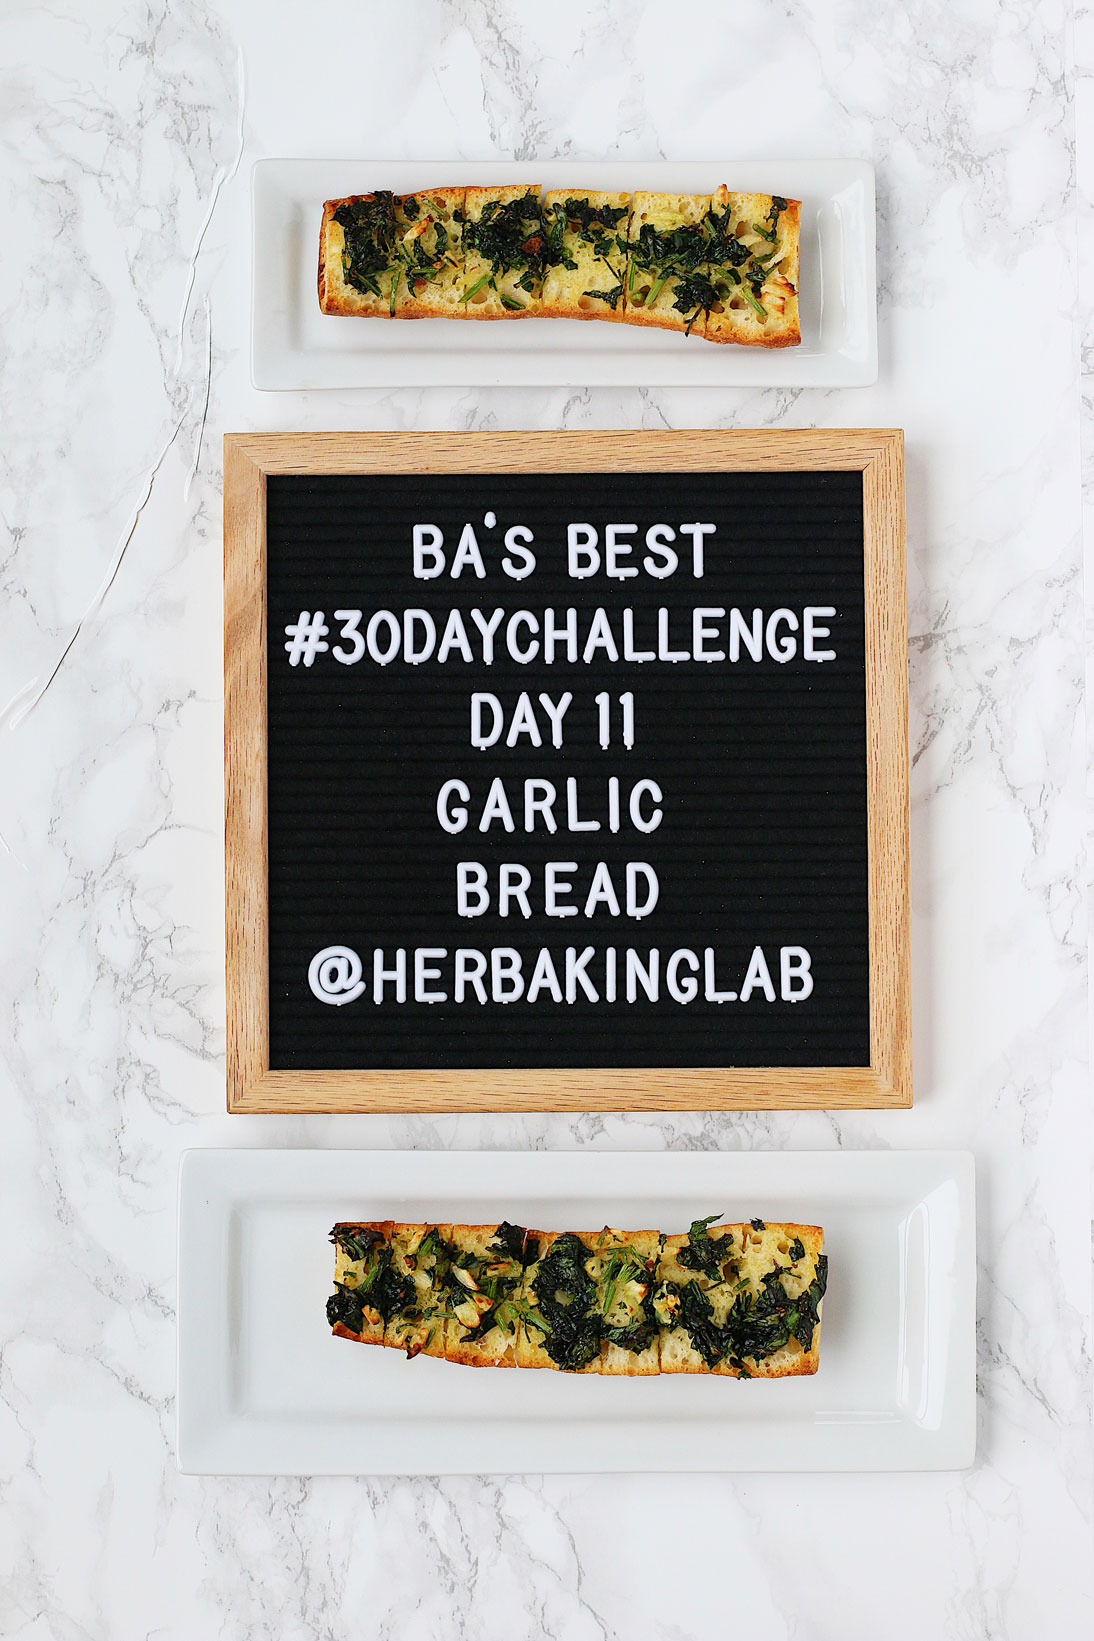 #ba30daychallenge-bon-appetit-best-recipes-day-11-garlic-bread